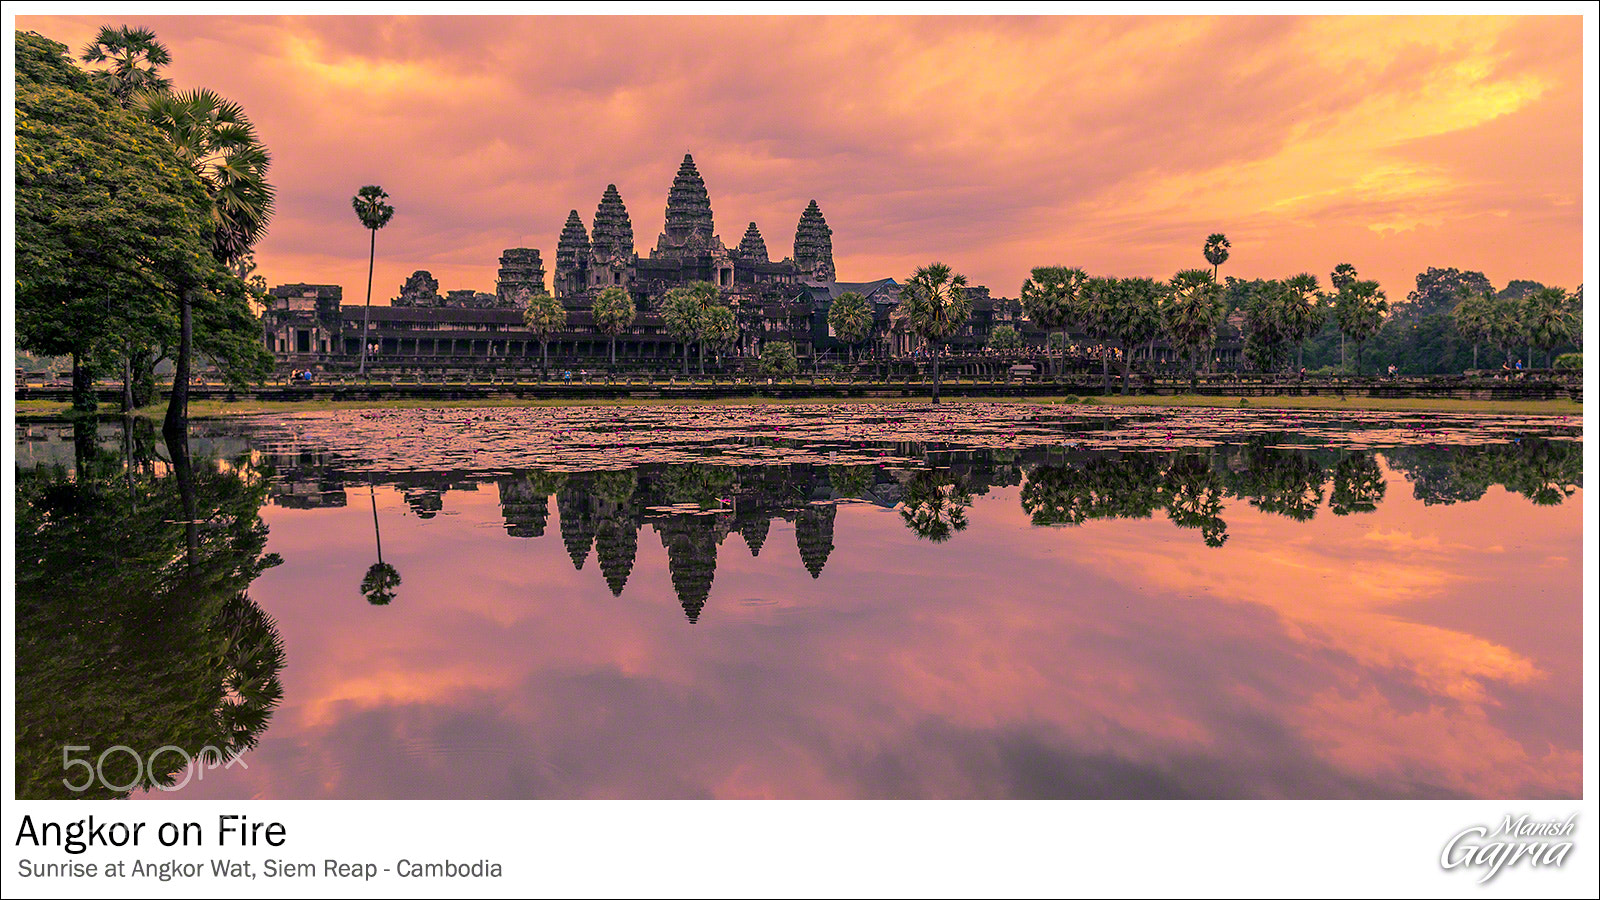 Photograph Angkor on Fire by Manish Gajria on 500px